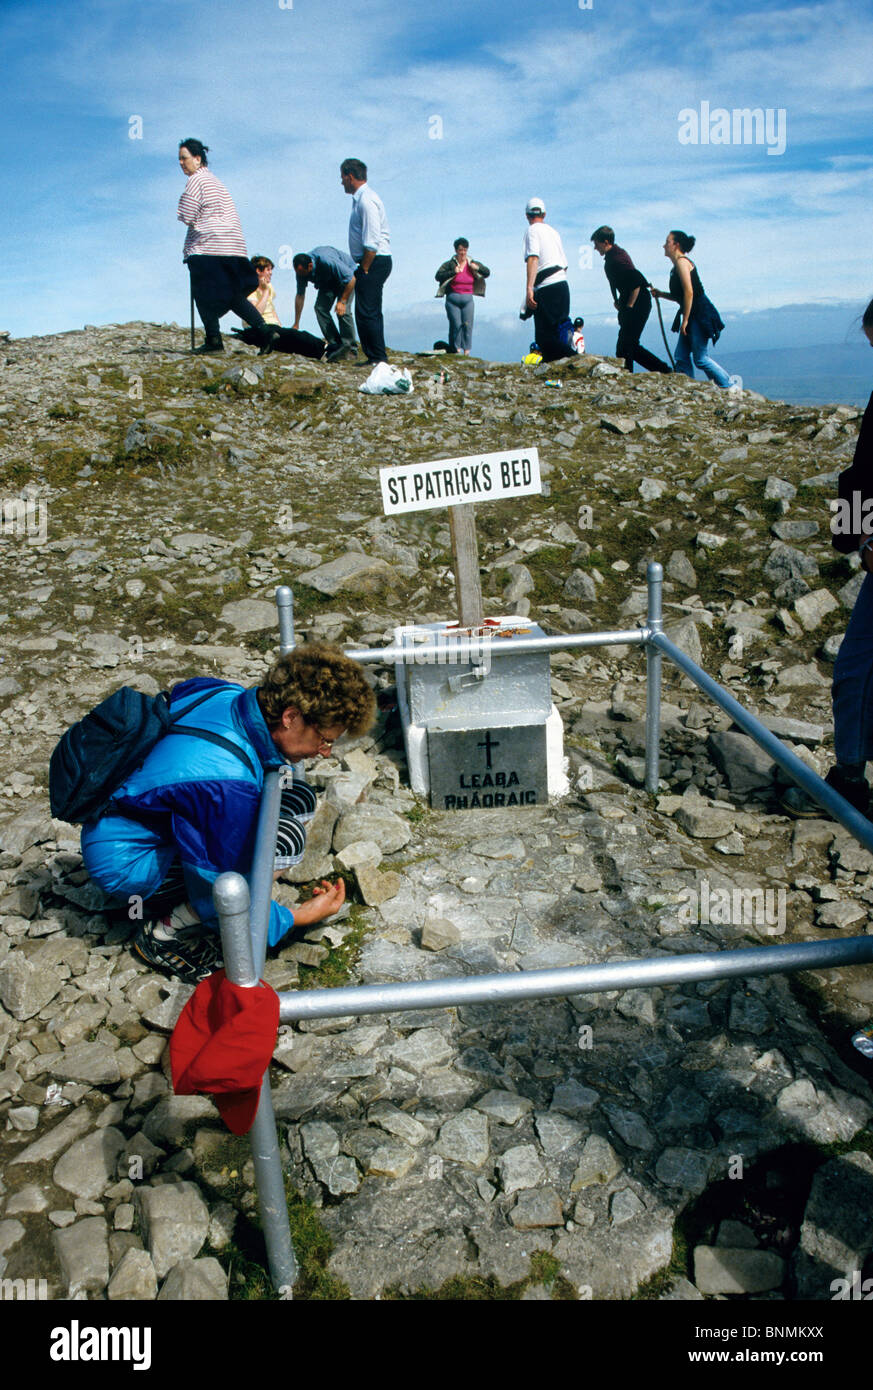 Pilgrims  at St Patricks Bed on Croagh Patrick (Irish: Cruach Phádraig),  the last Sunday in July every year - Stock Image